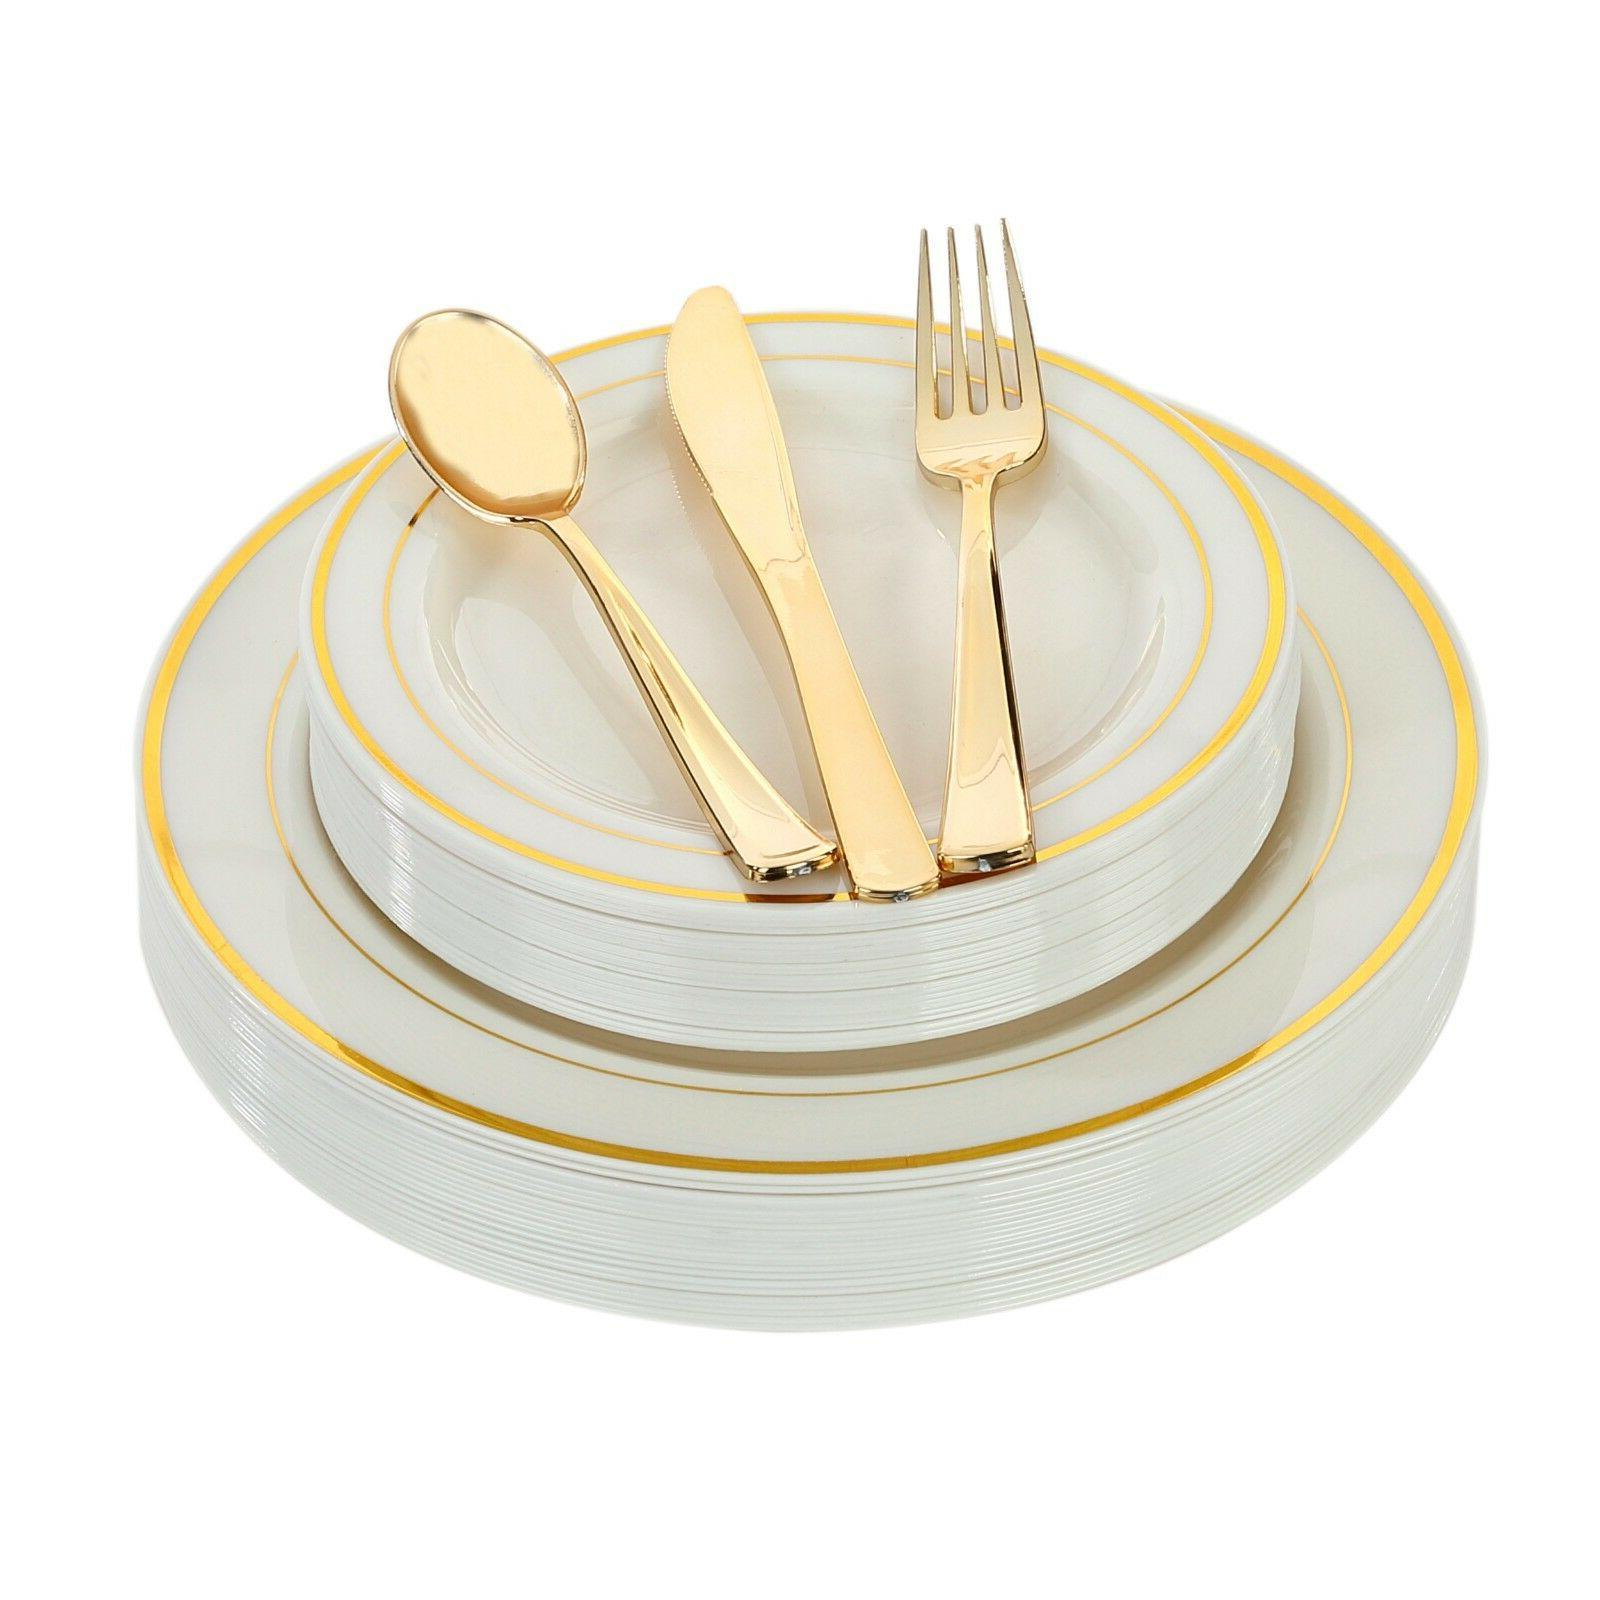 plastic disposable plates dinner wedding silve gold